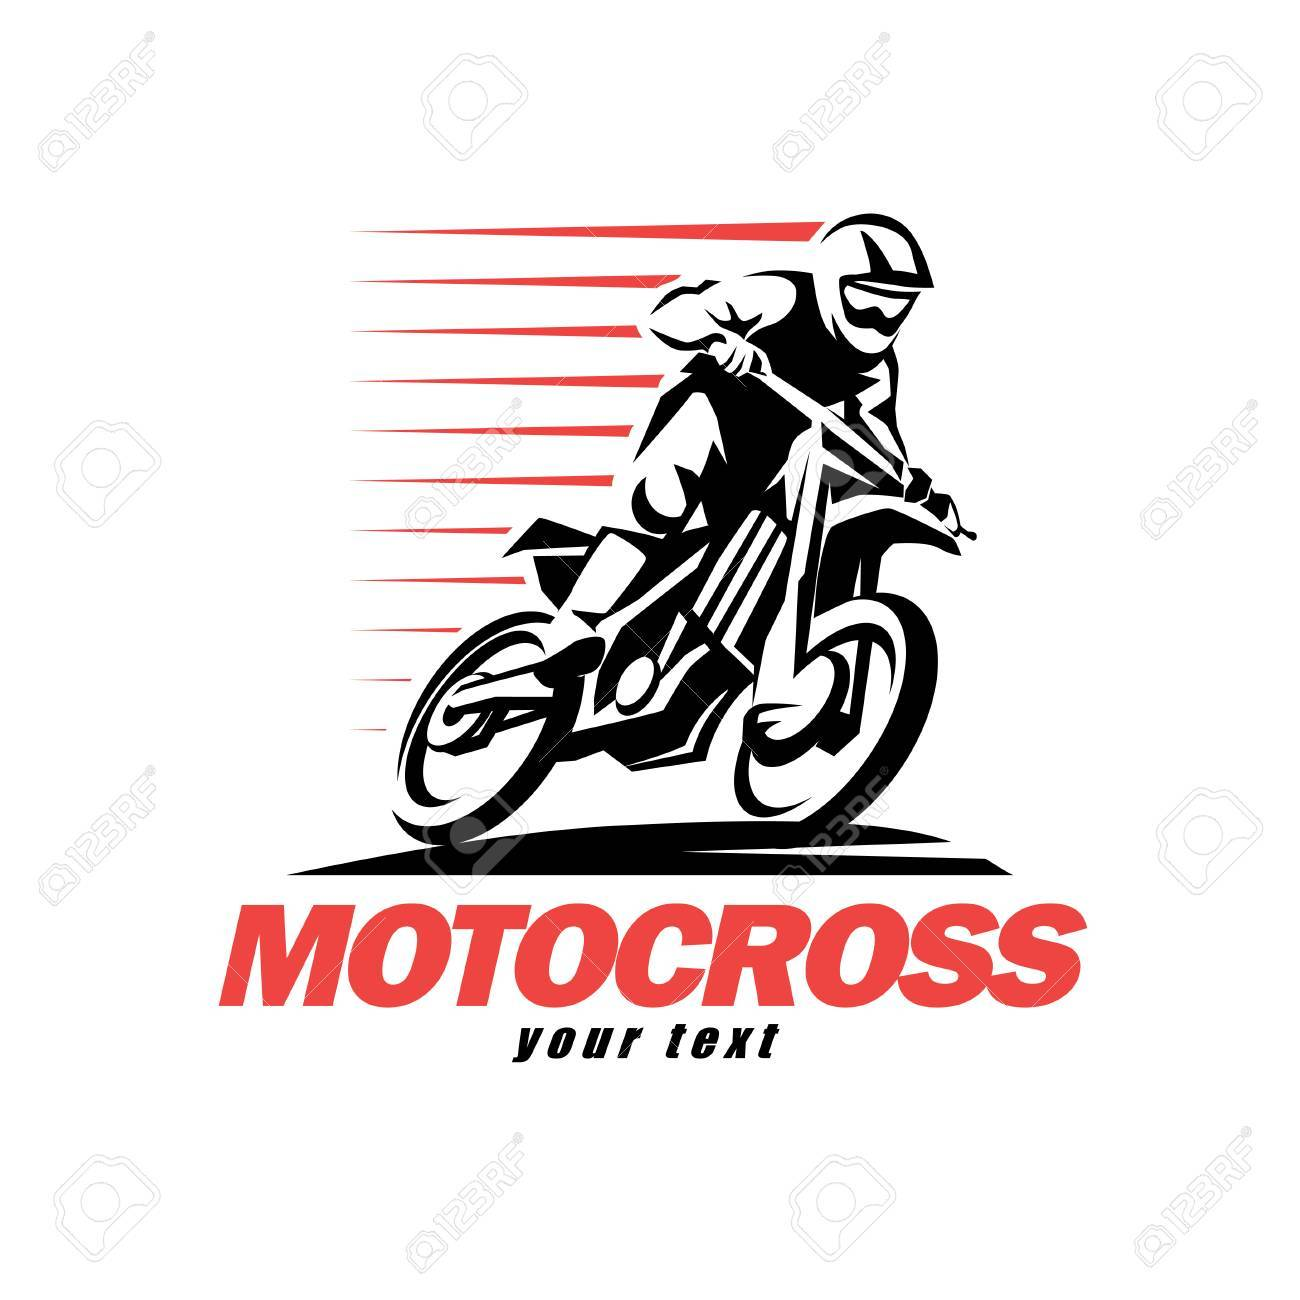 83a17b99 3,952 Dirt Bike Cliparts, Stock Vector And Royalty Free Dirt Bike ...